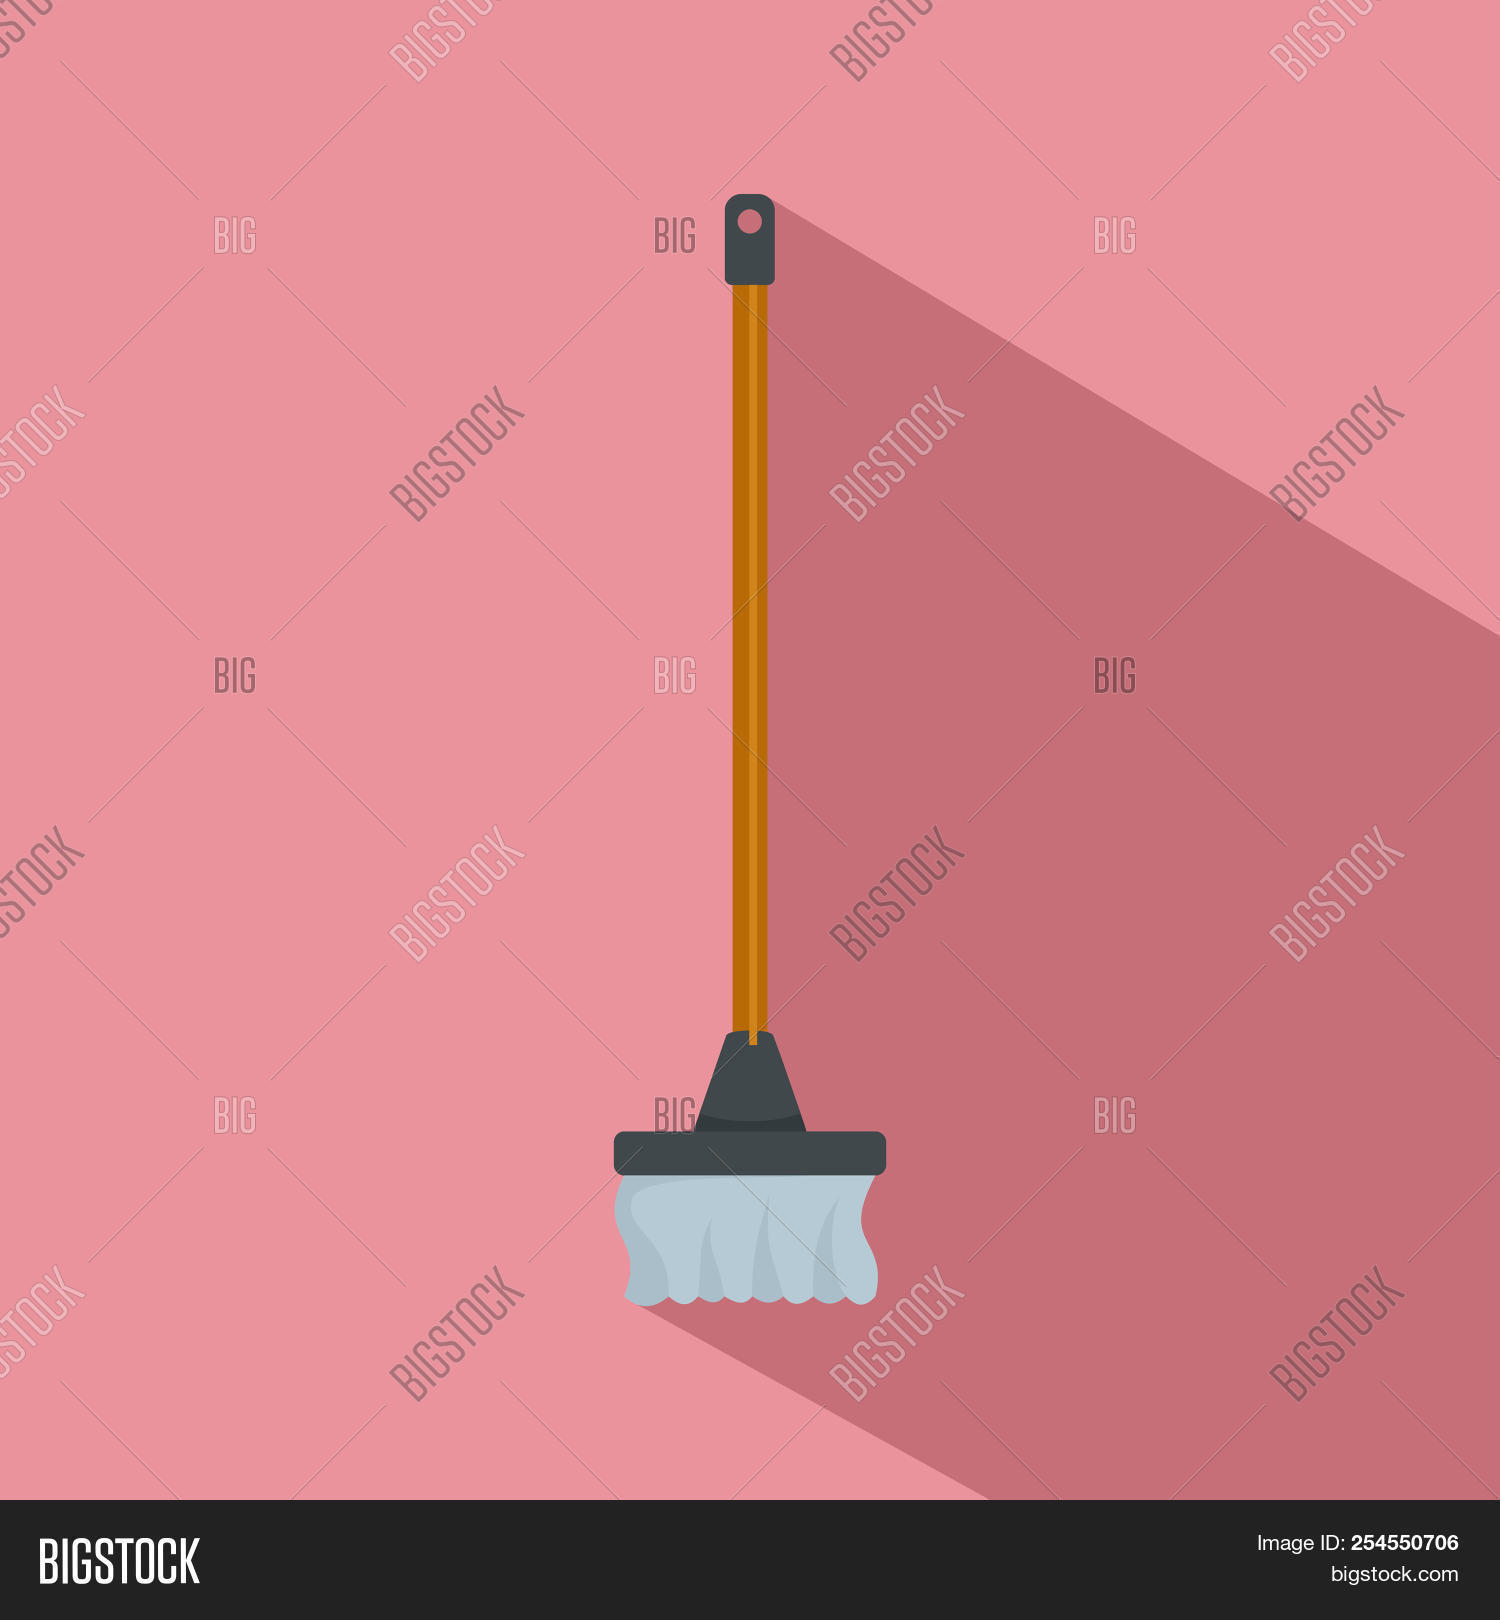 Cleaning Mop Icon  Image & Photo (Free Trial) | Bigstock